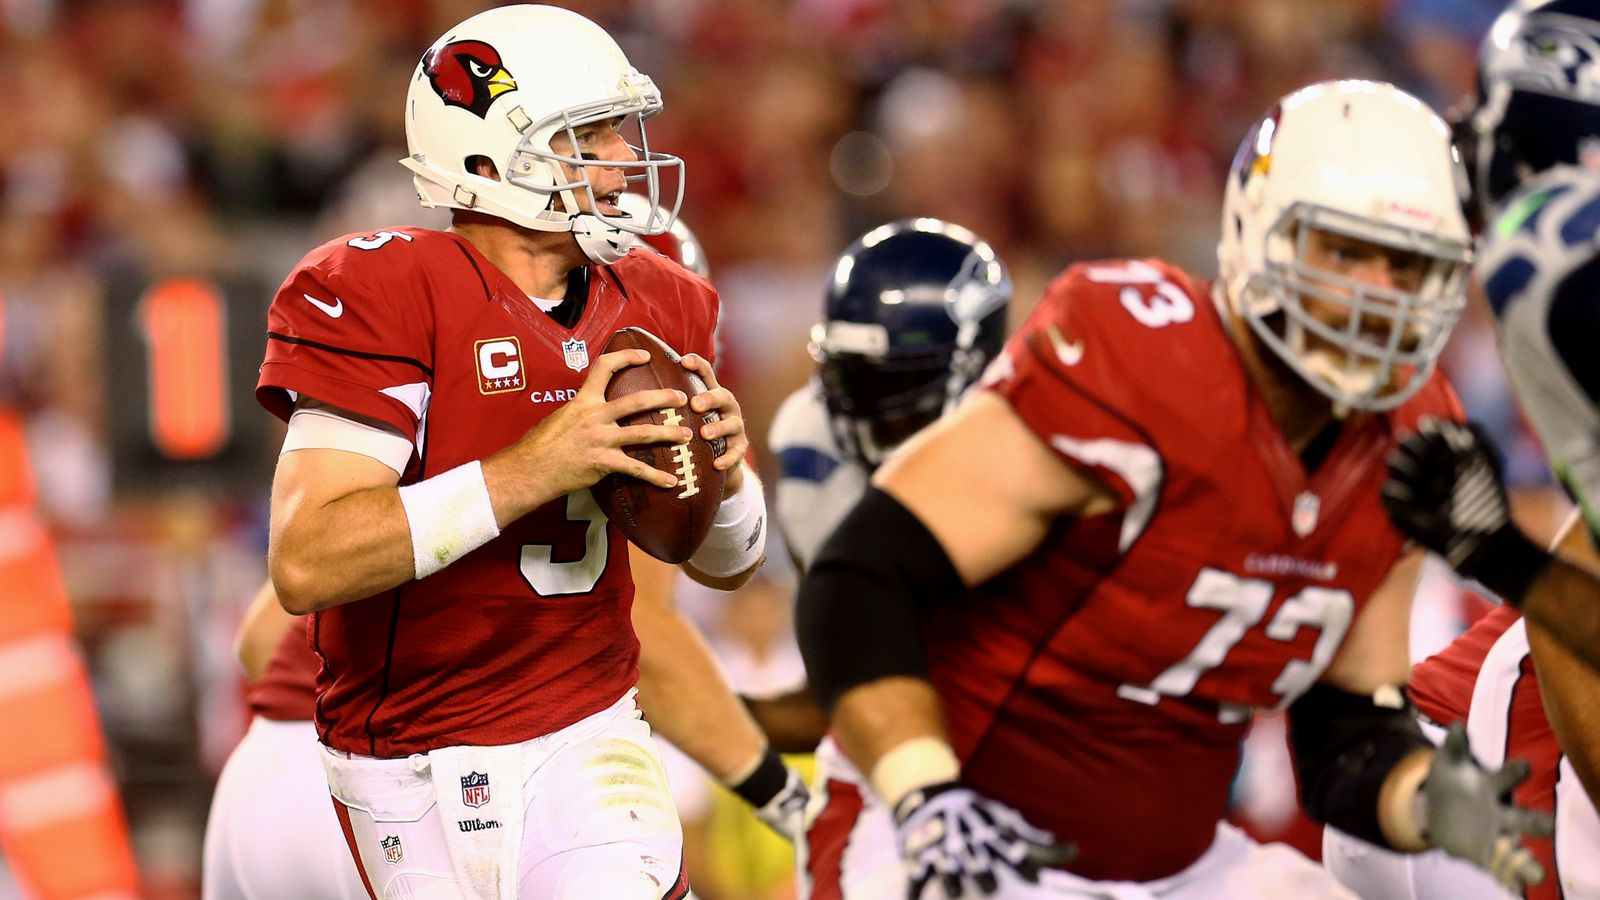 11/2 Bird Droppings: 2012 to 2013 comparisons